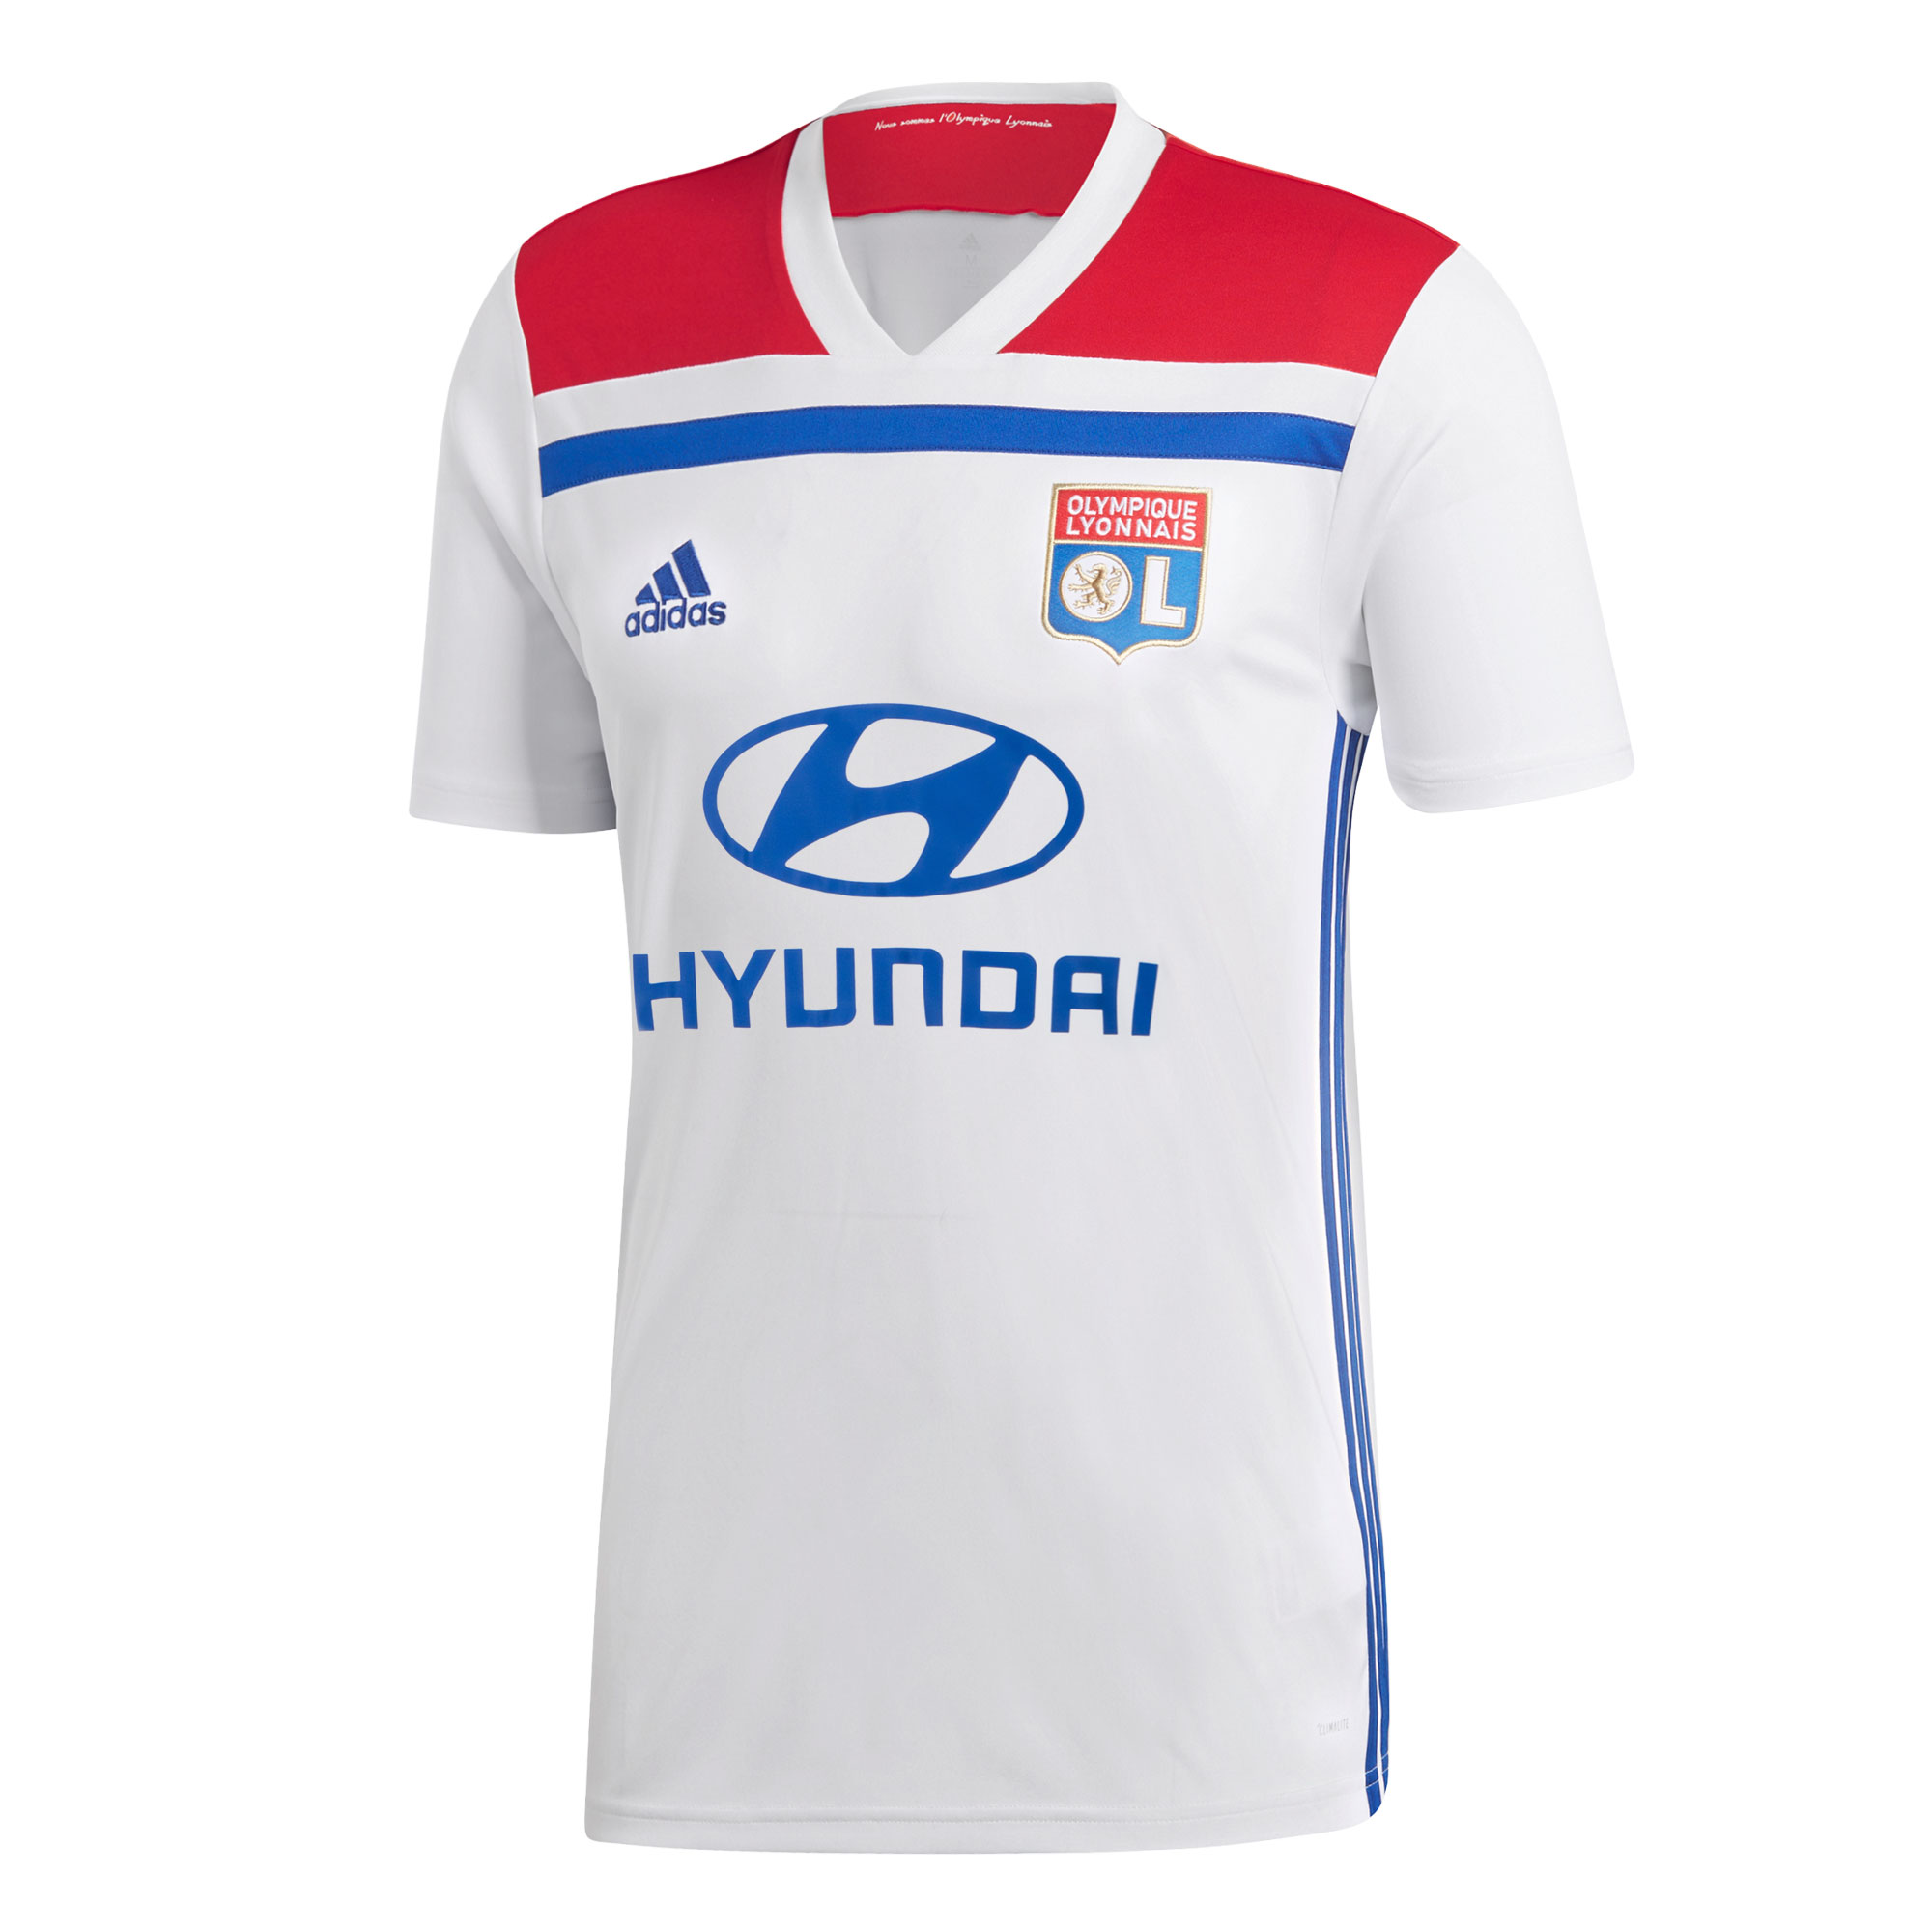 95c59748ff5 Cheap Lyon Kits | Compare Prices at FOOTY.COM